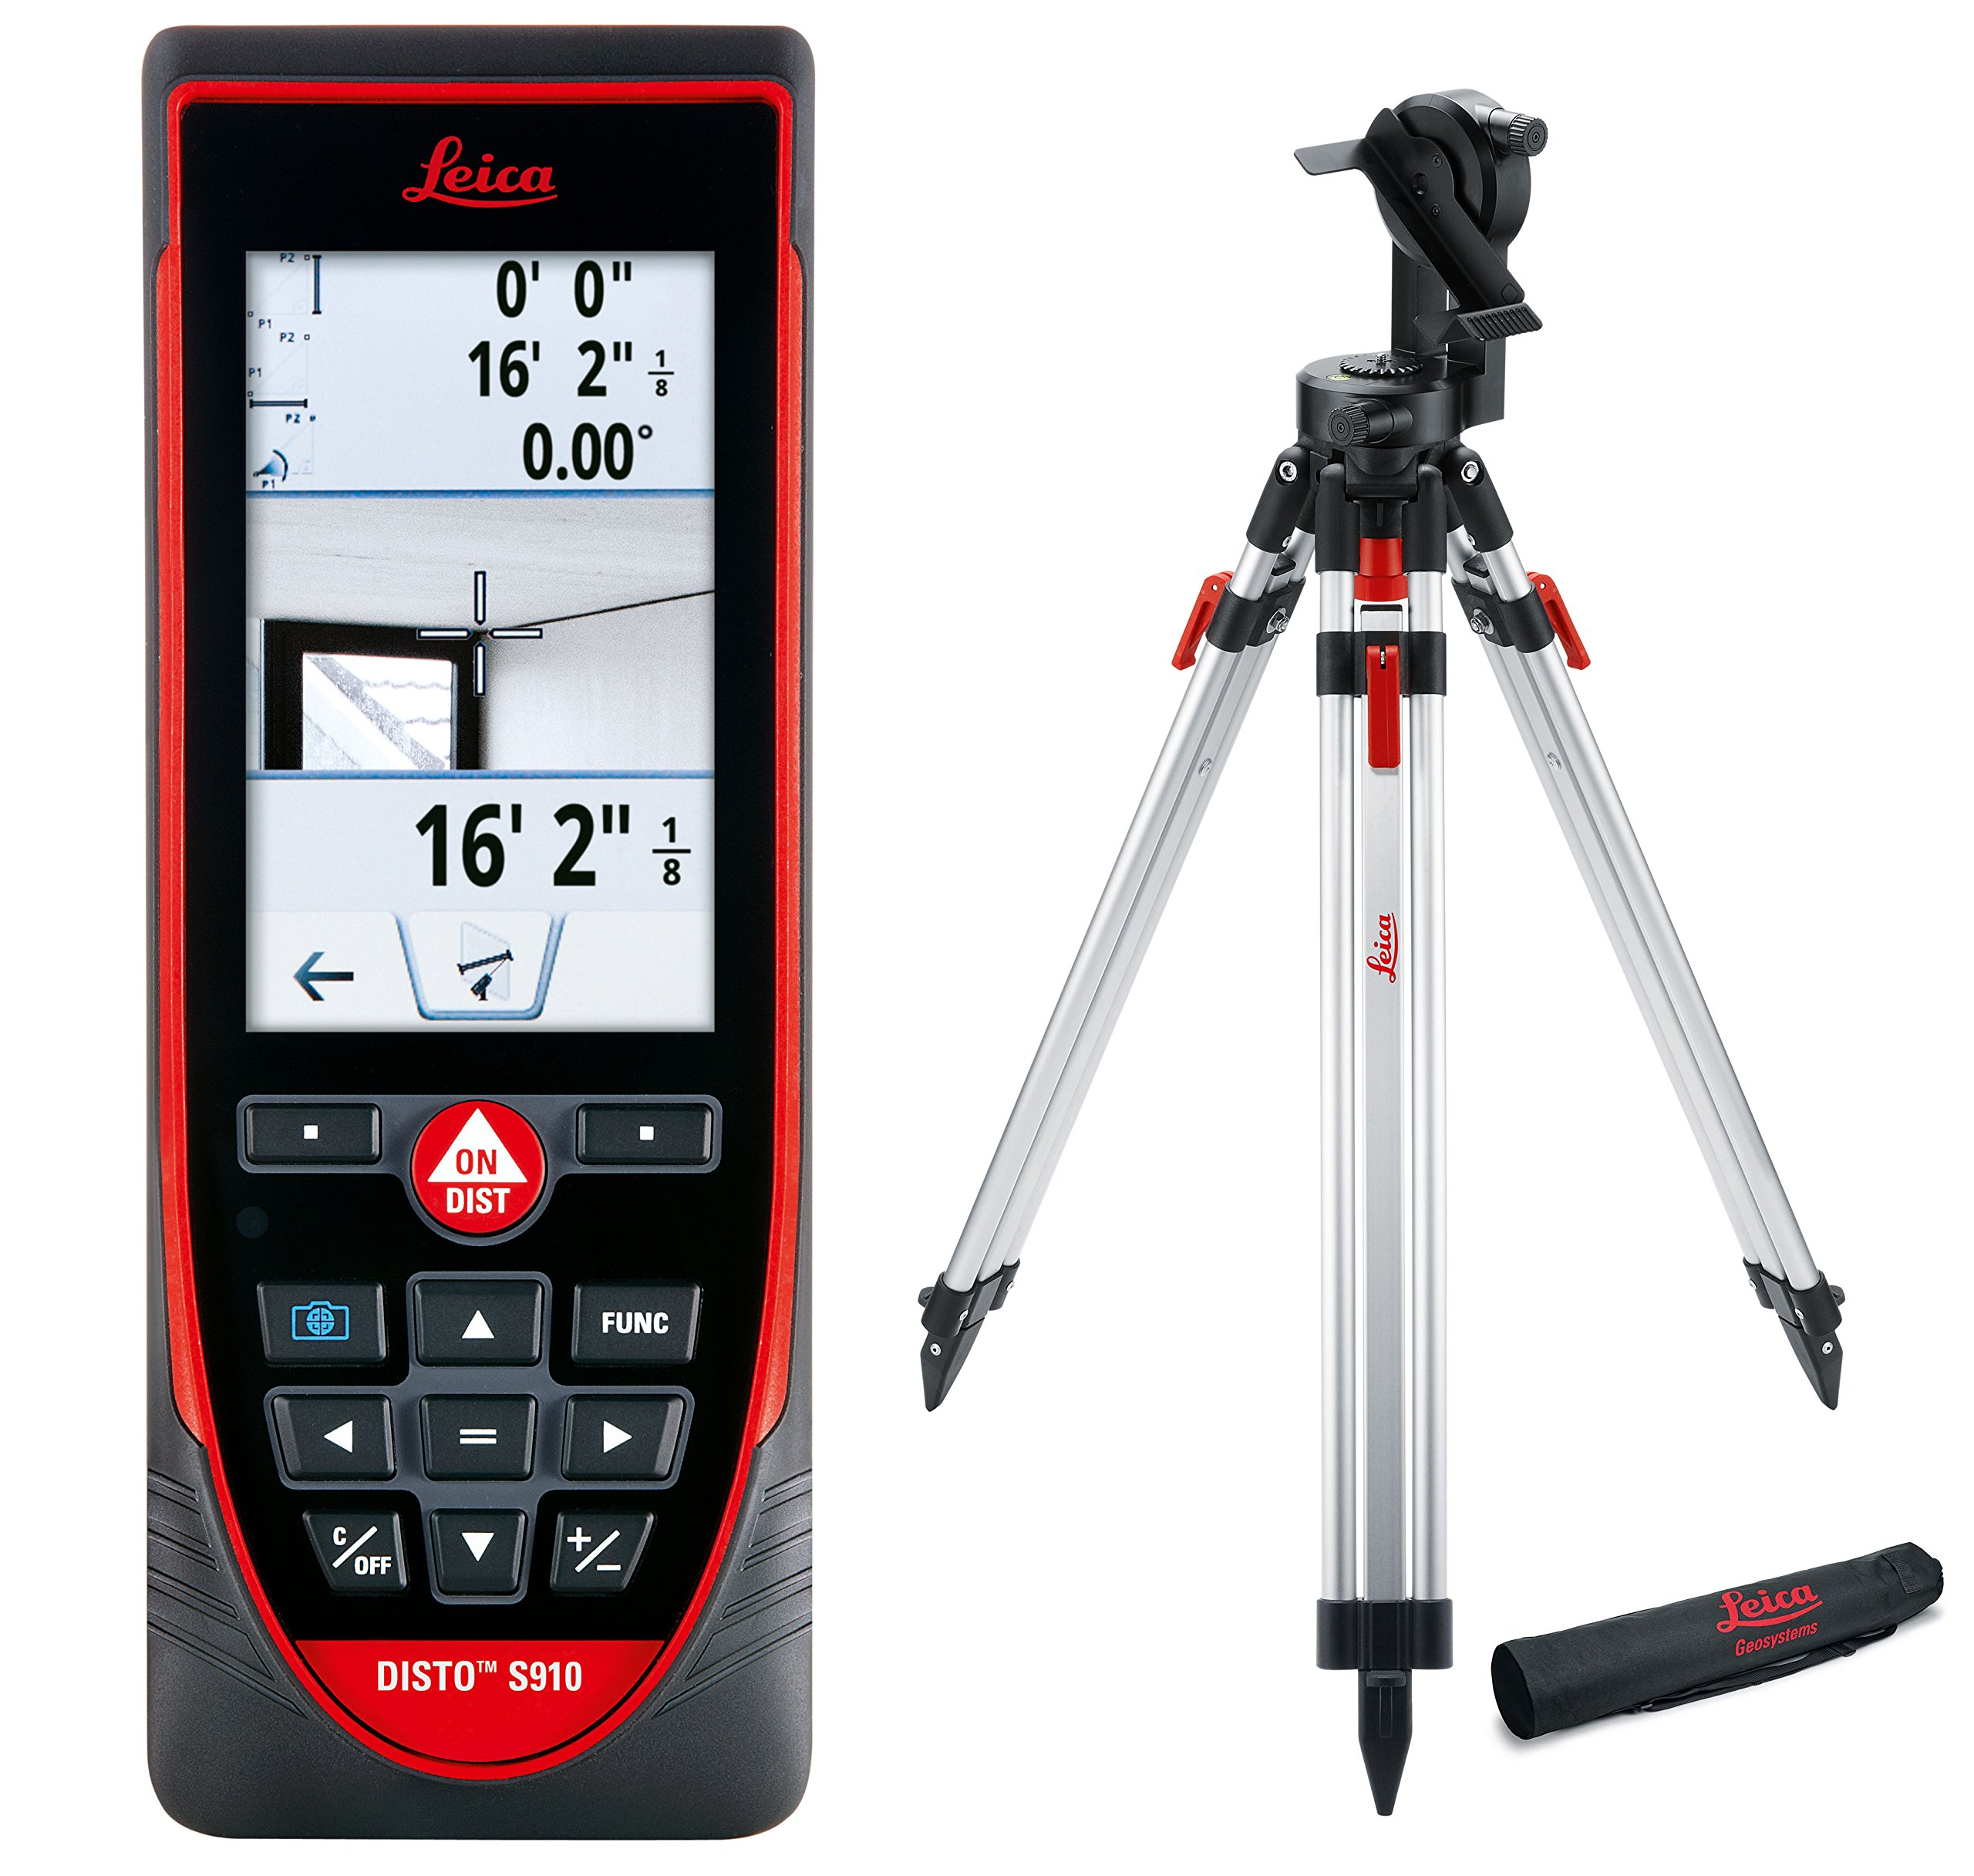 Leica DISTO S910 984ft Laser Distance Measurer, Point to Point Measuring, Red/Black (Exterior Package)